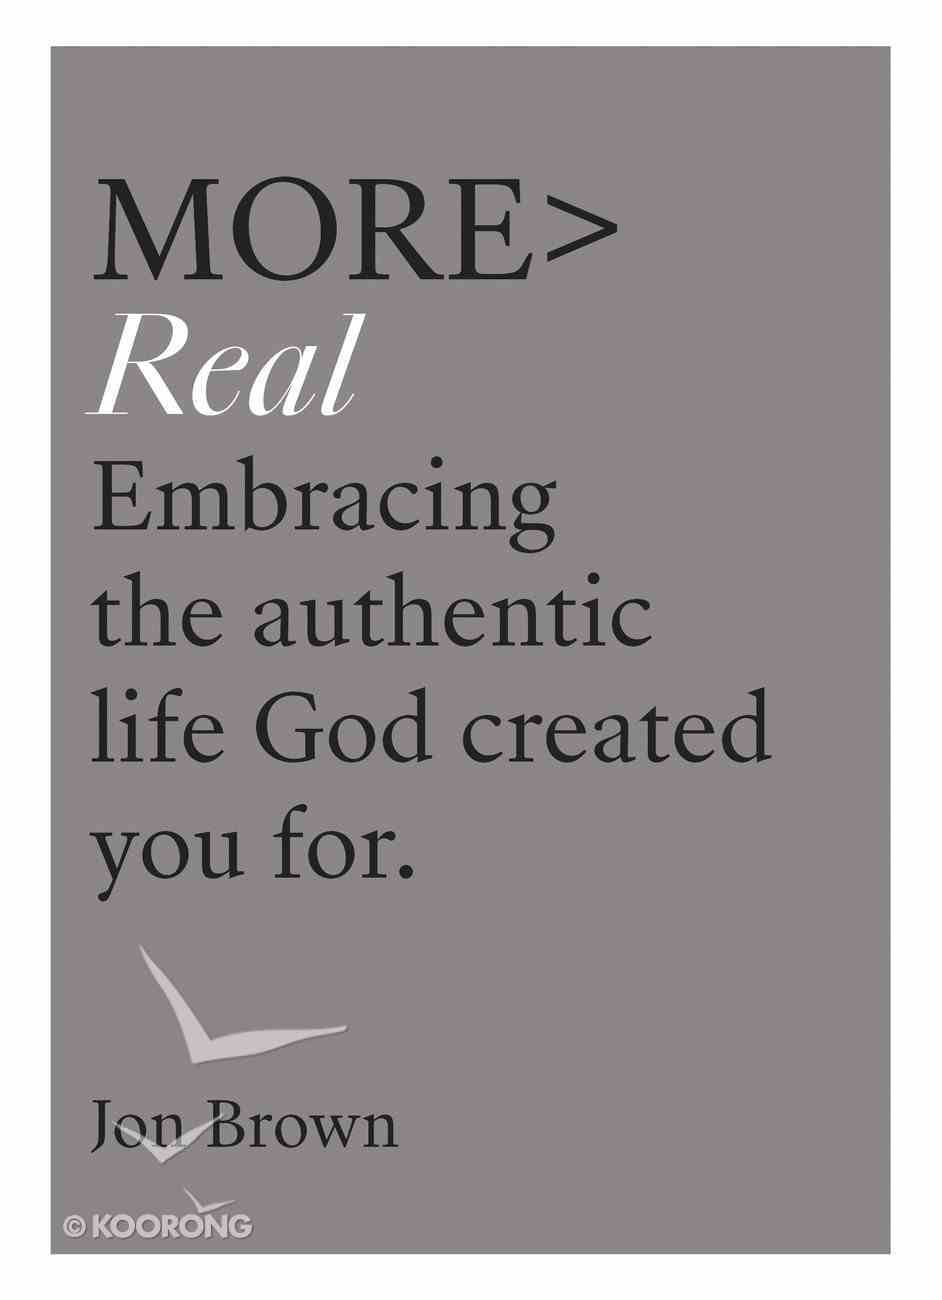 More> Real: Embracing the Authentic Life God Created You For (More Series) Paperback